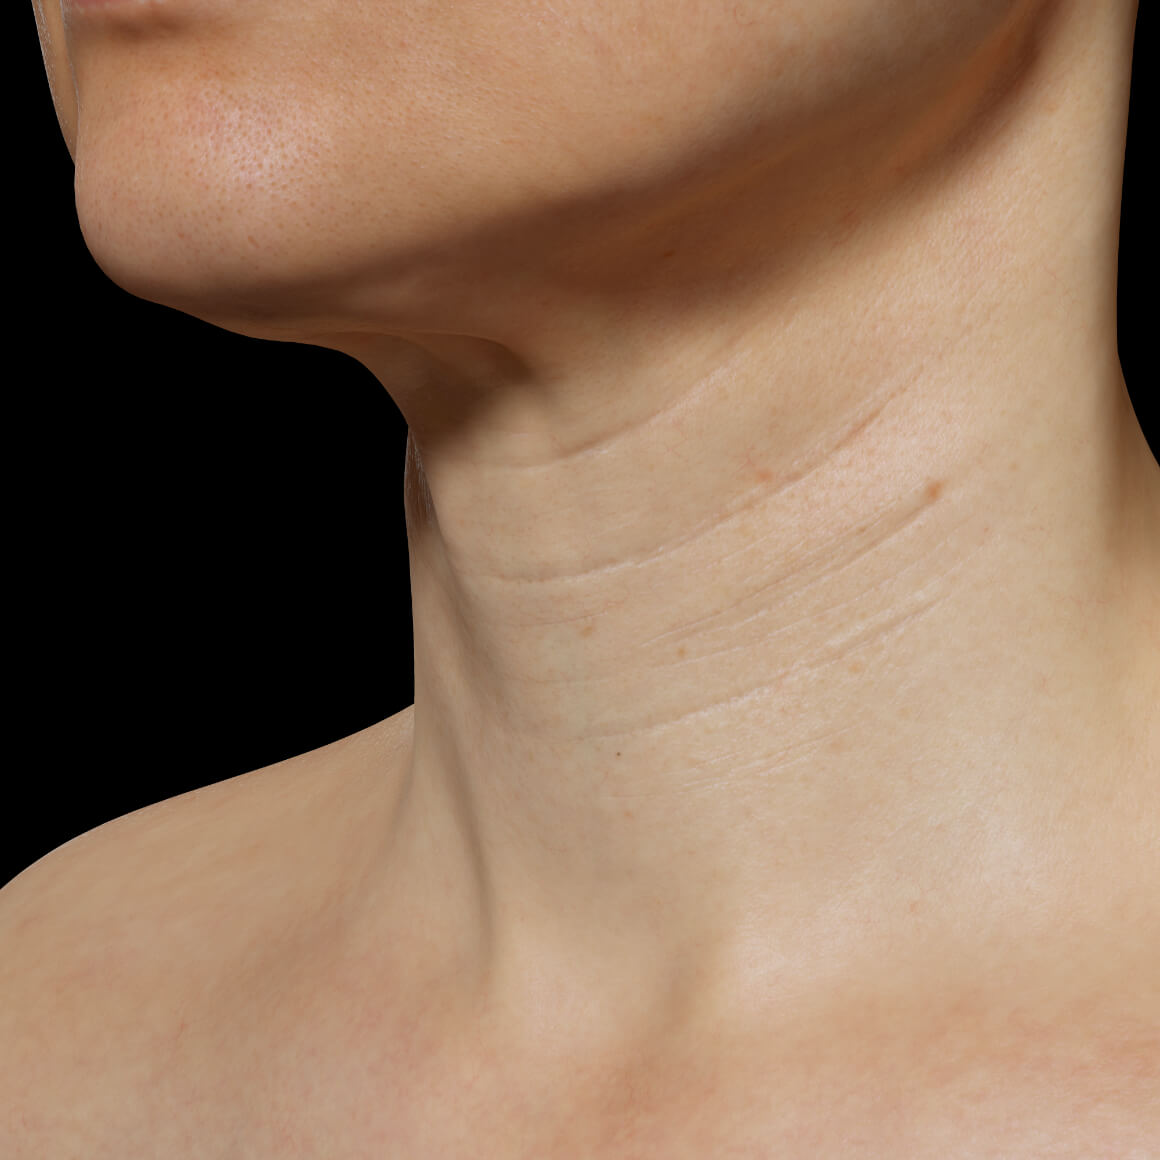 A female patient at Clinique Chloé positioned at an angle showing fine lines and wrinkles in the neck